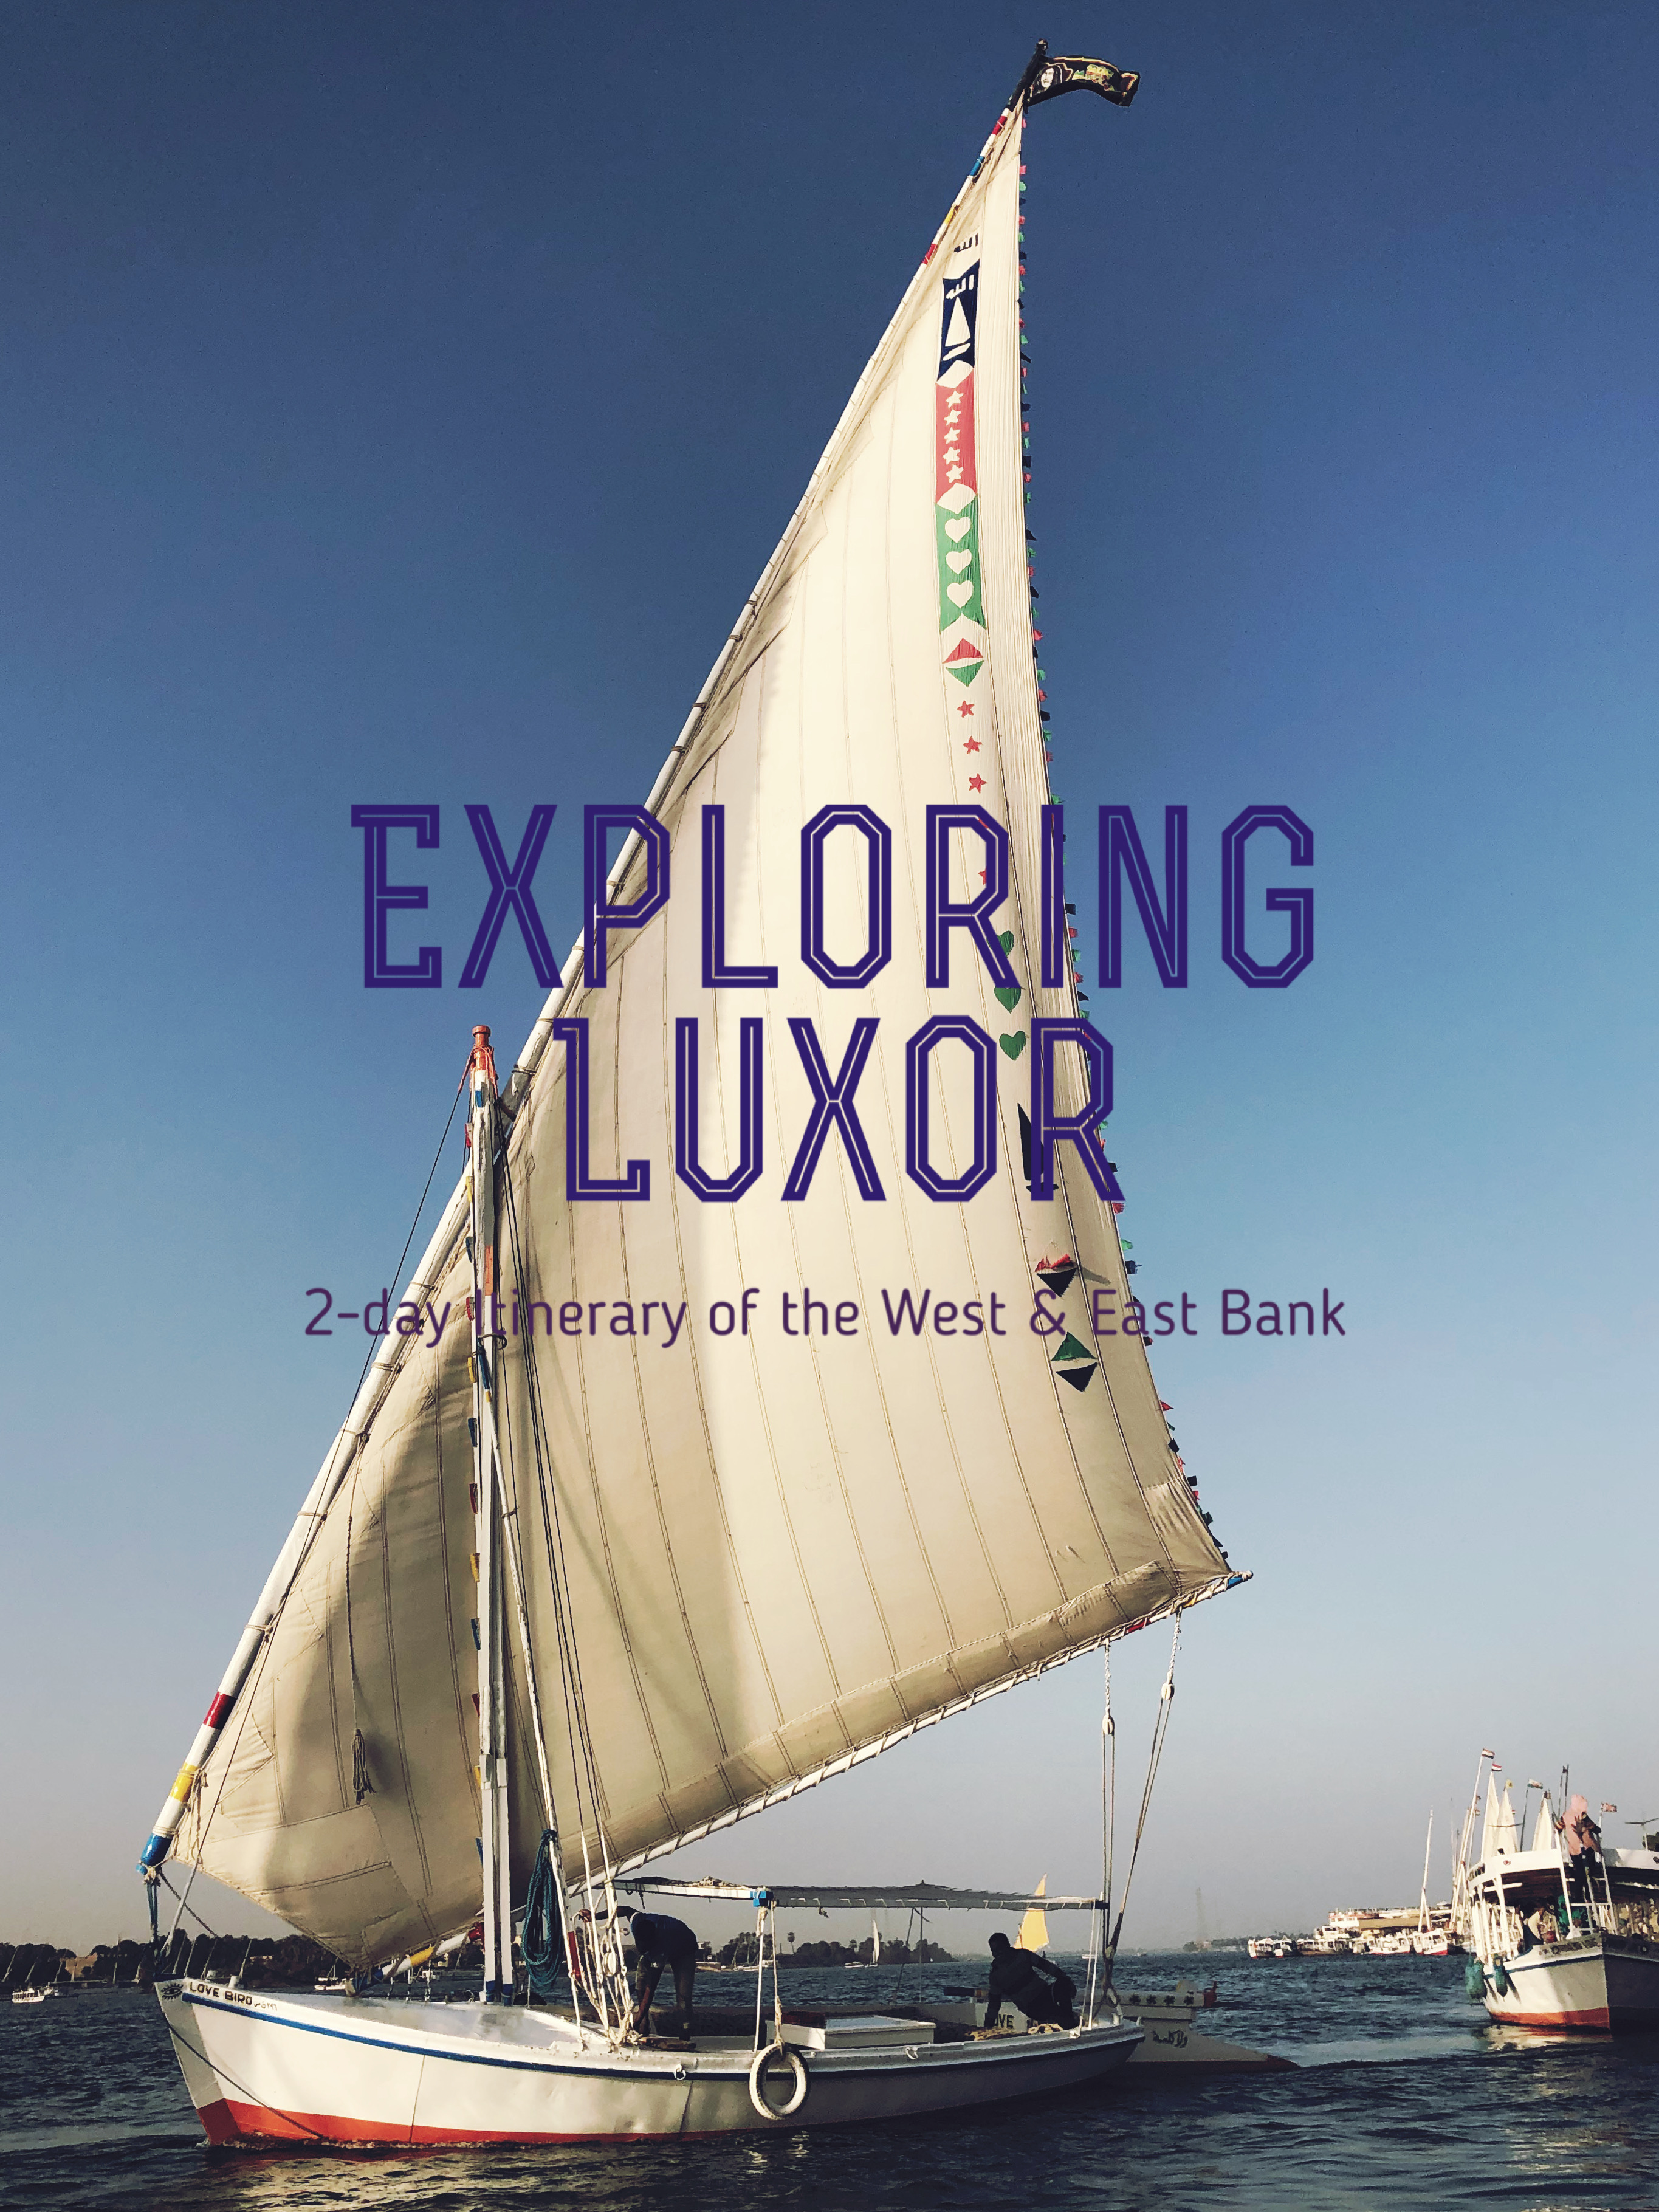 A Perfectly Fascinating Two-day Itinerary in Luxor